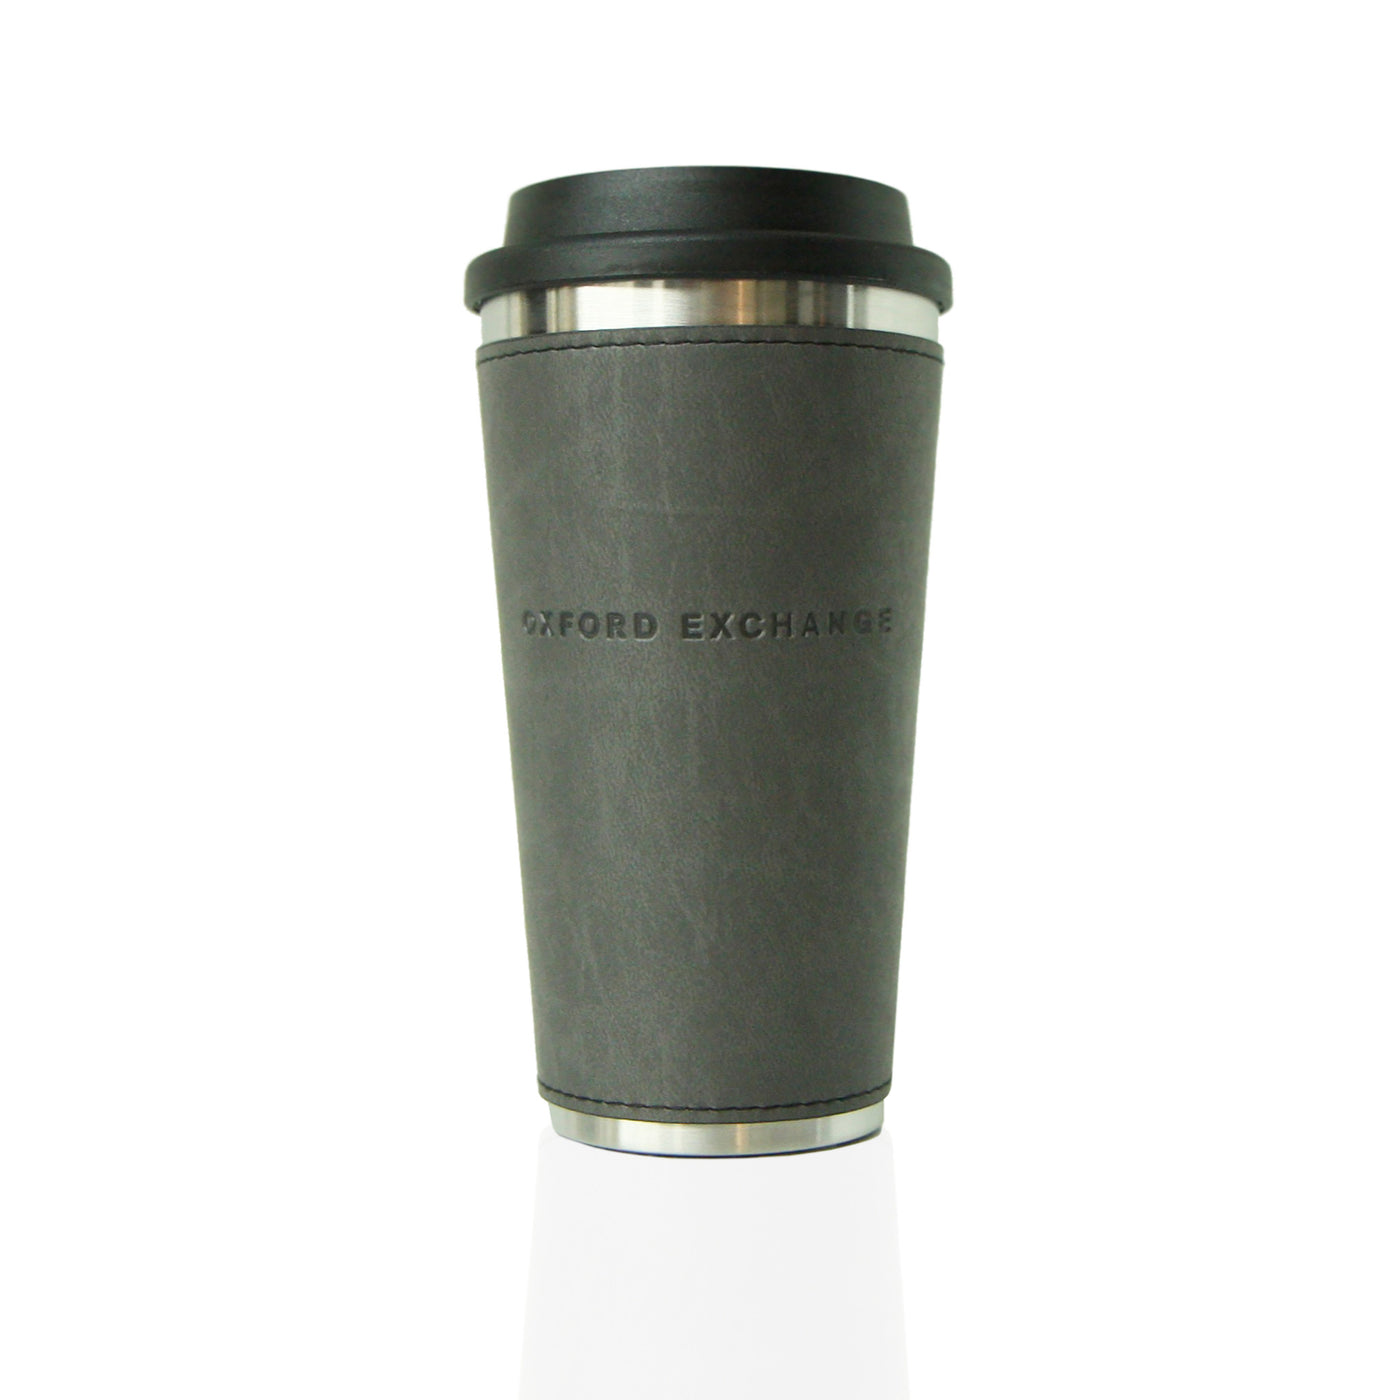 Oxford Exchange Travel Mug